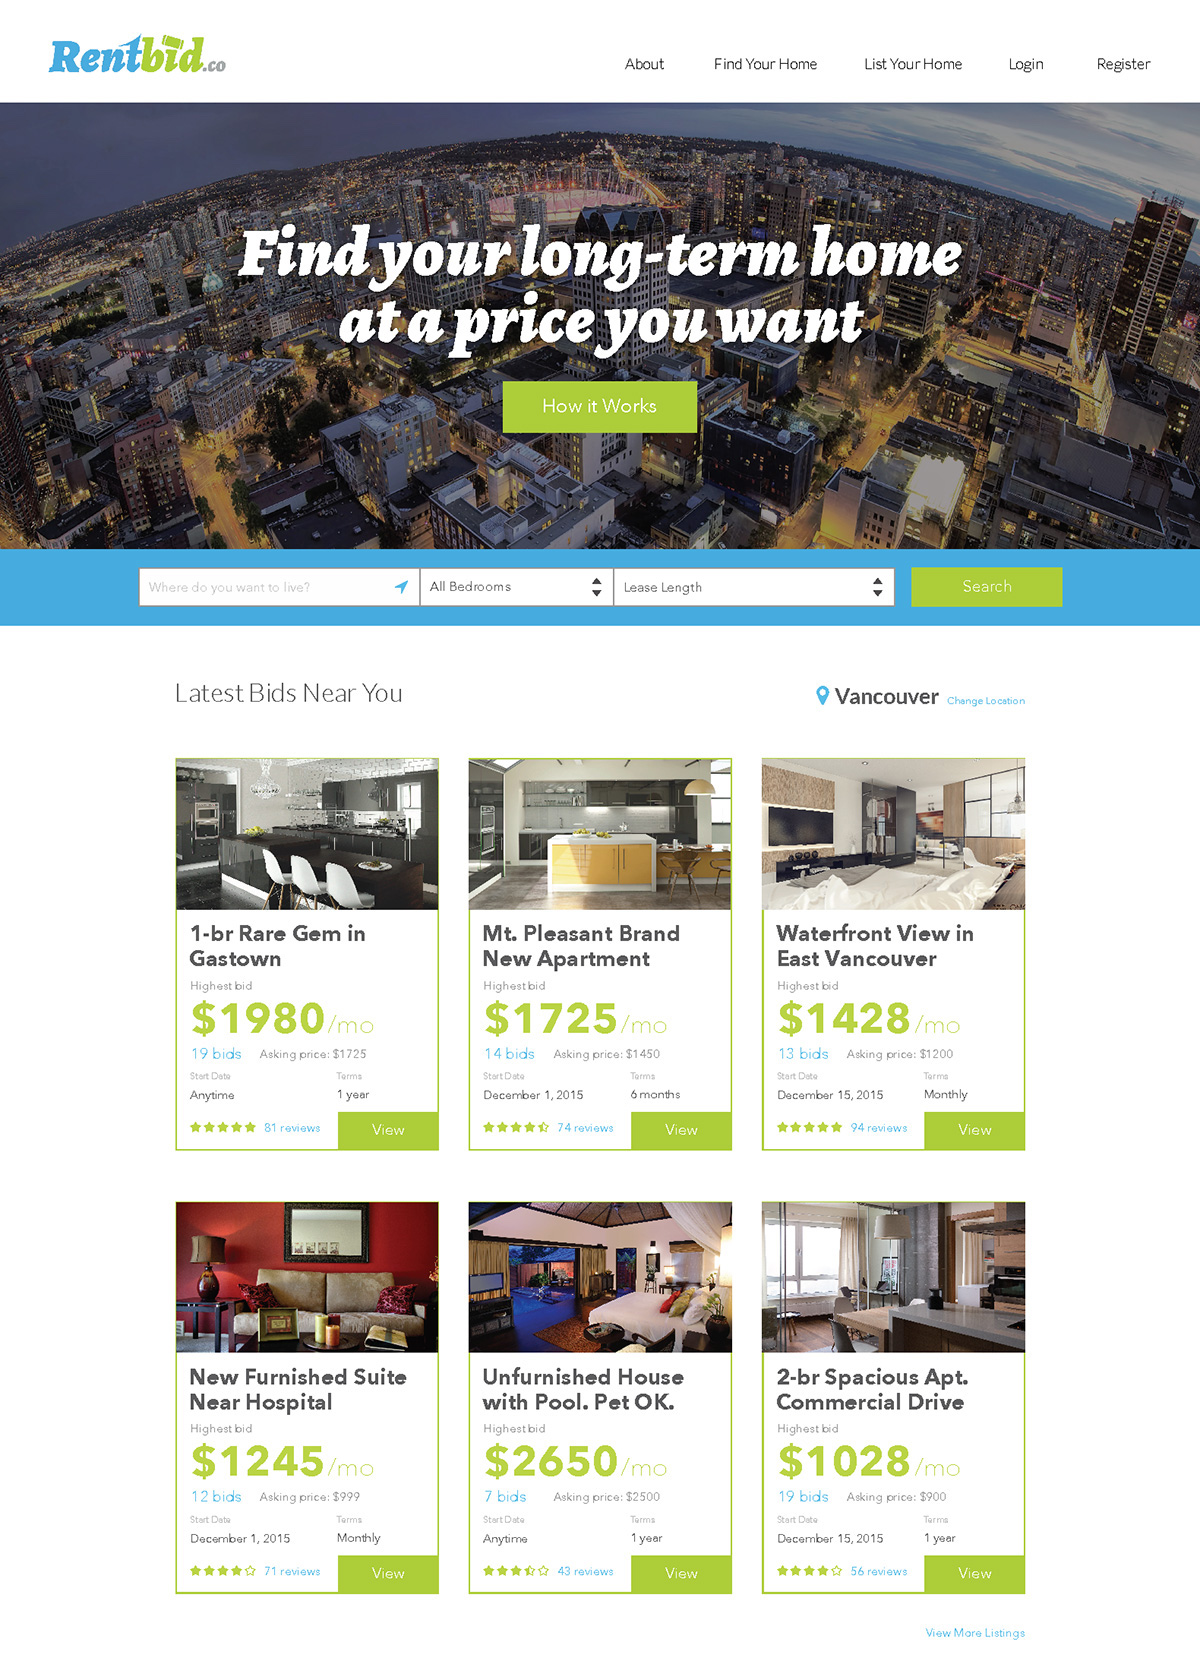 Startup Rentbid UX/UI design project custom landing page with search results